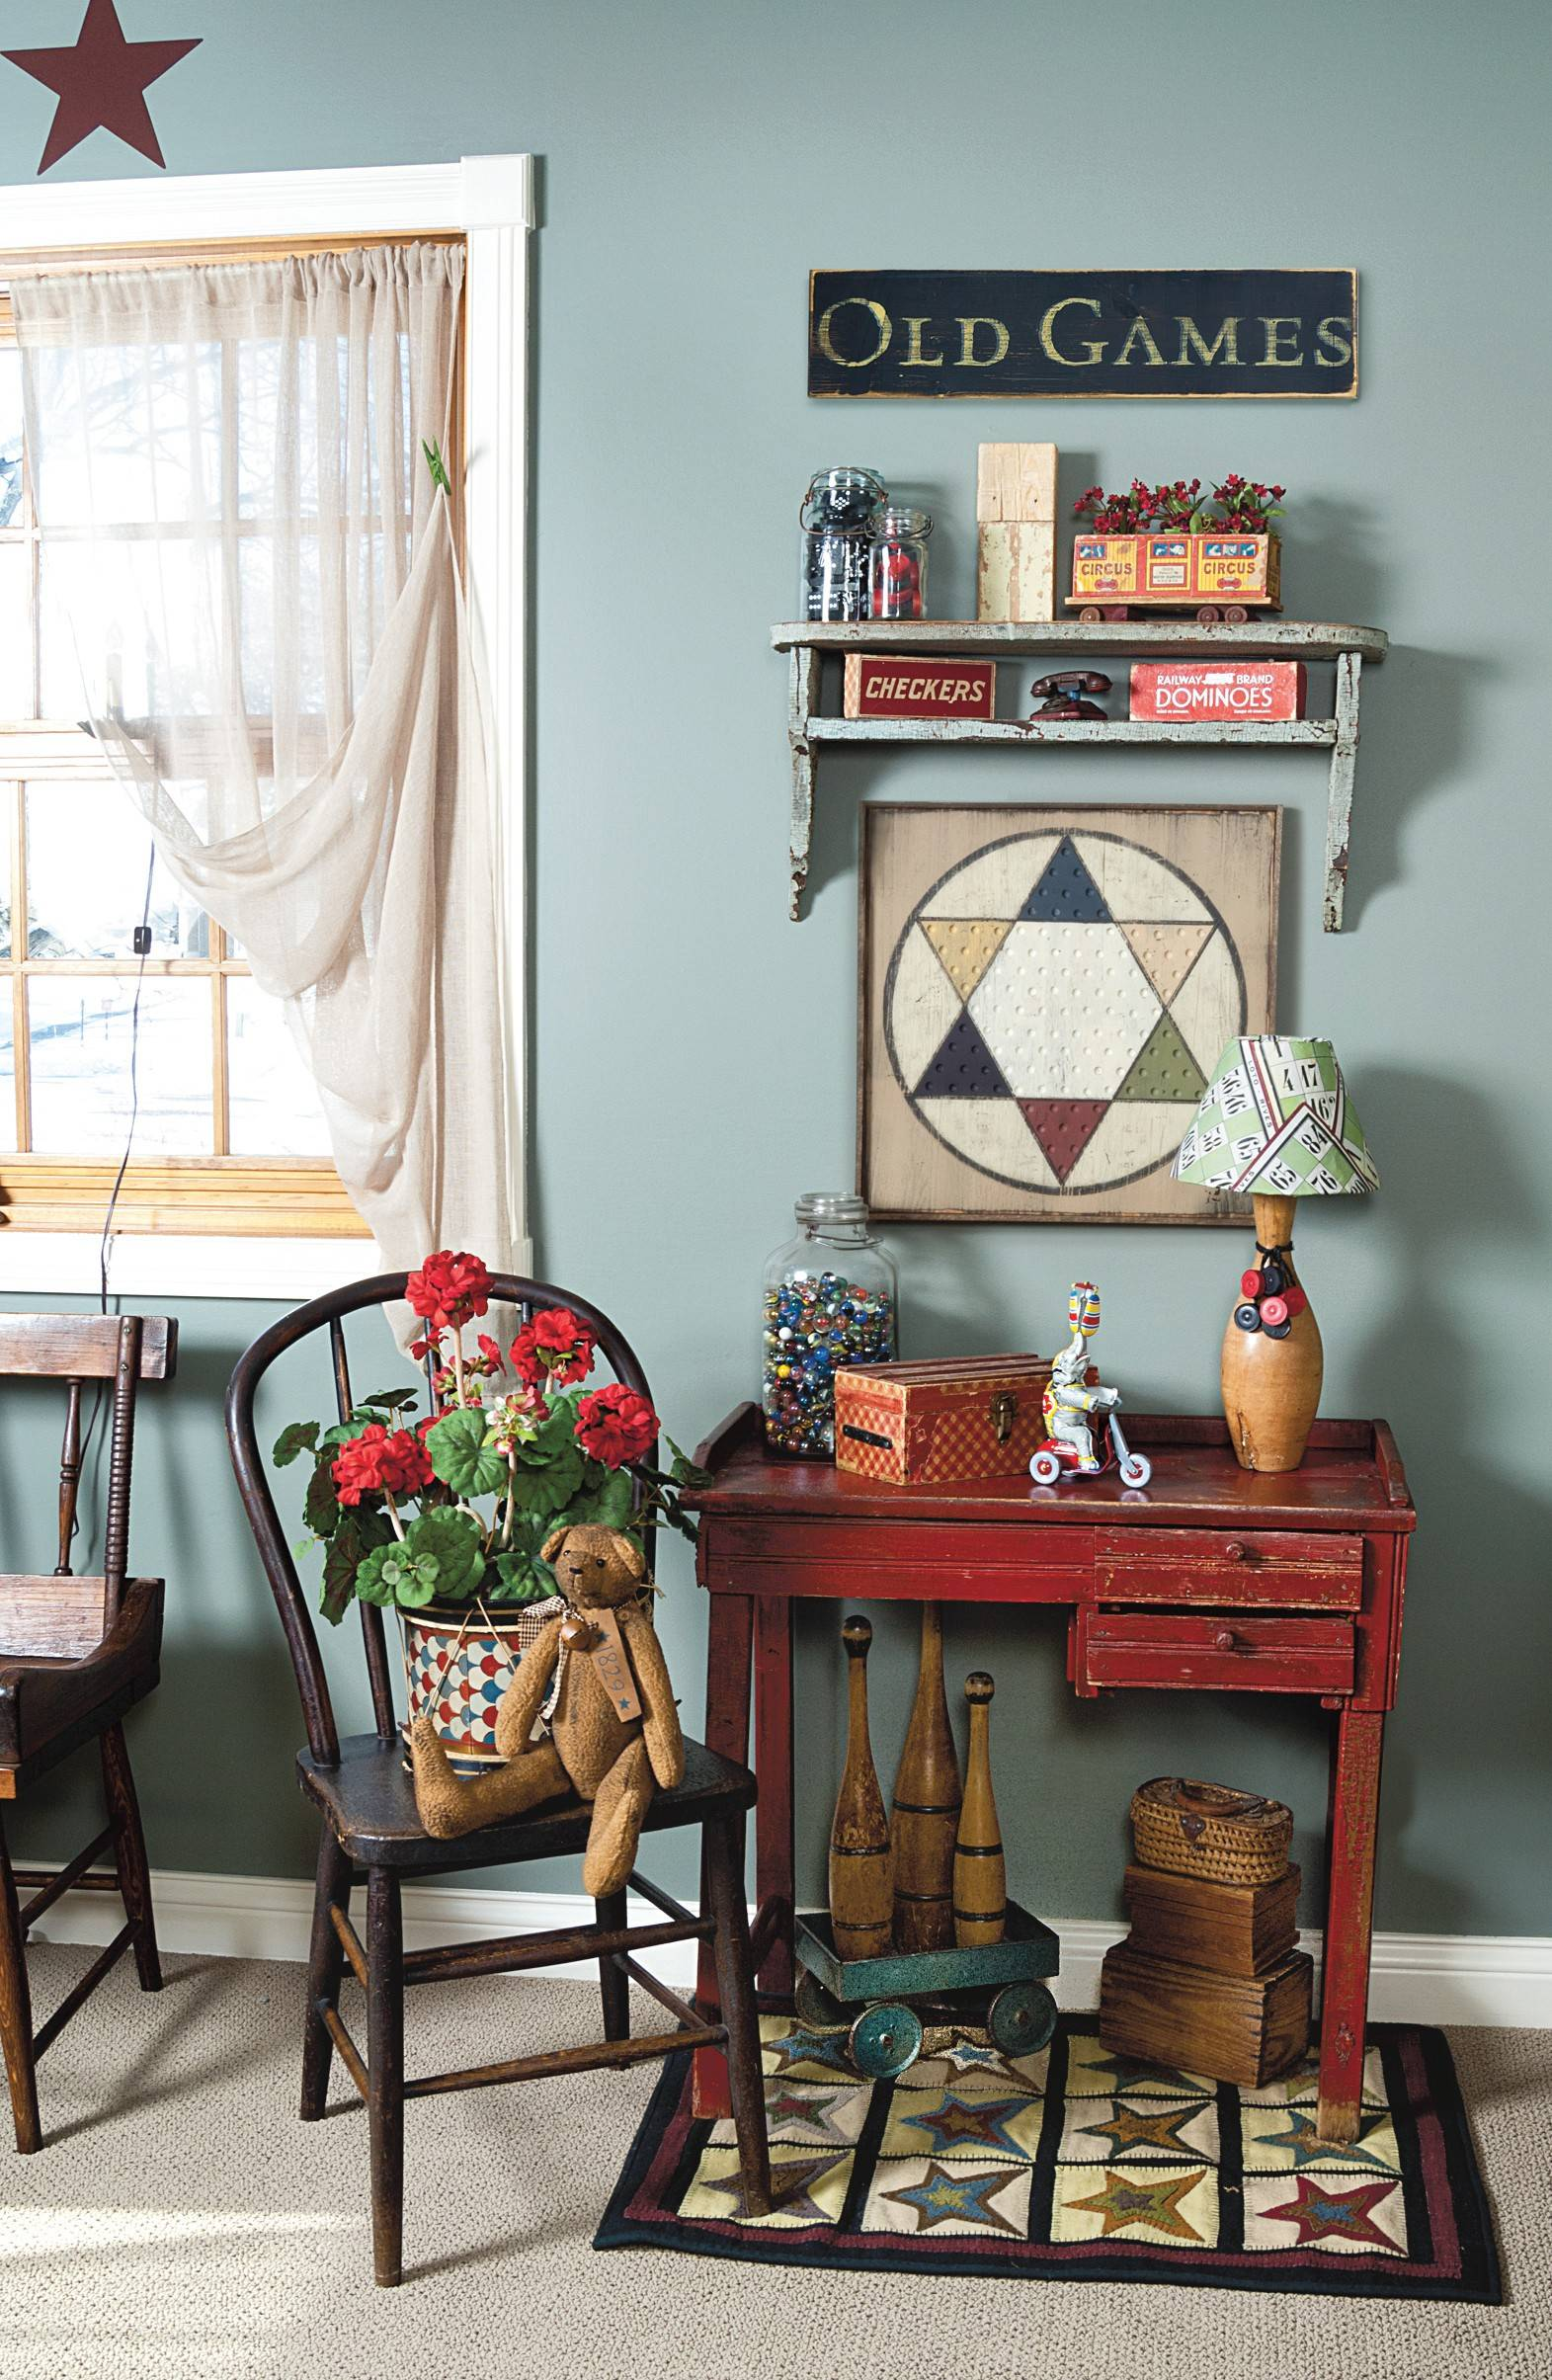 A well-aged red desk provides a splash of color against the blue-green wall and offers a vibrant contrast to the room's wood-toned furniture.